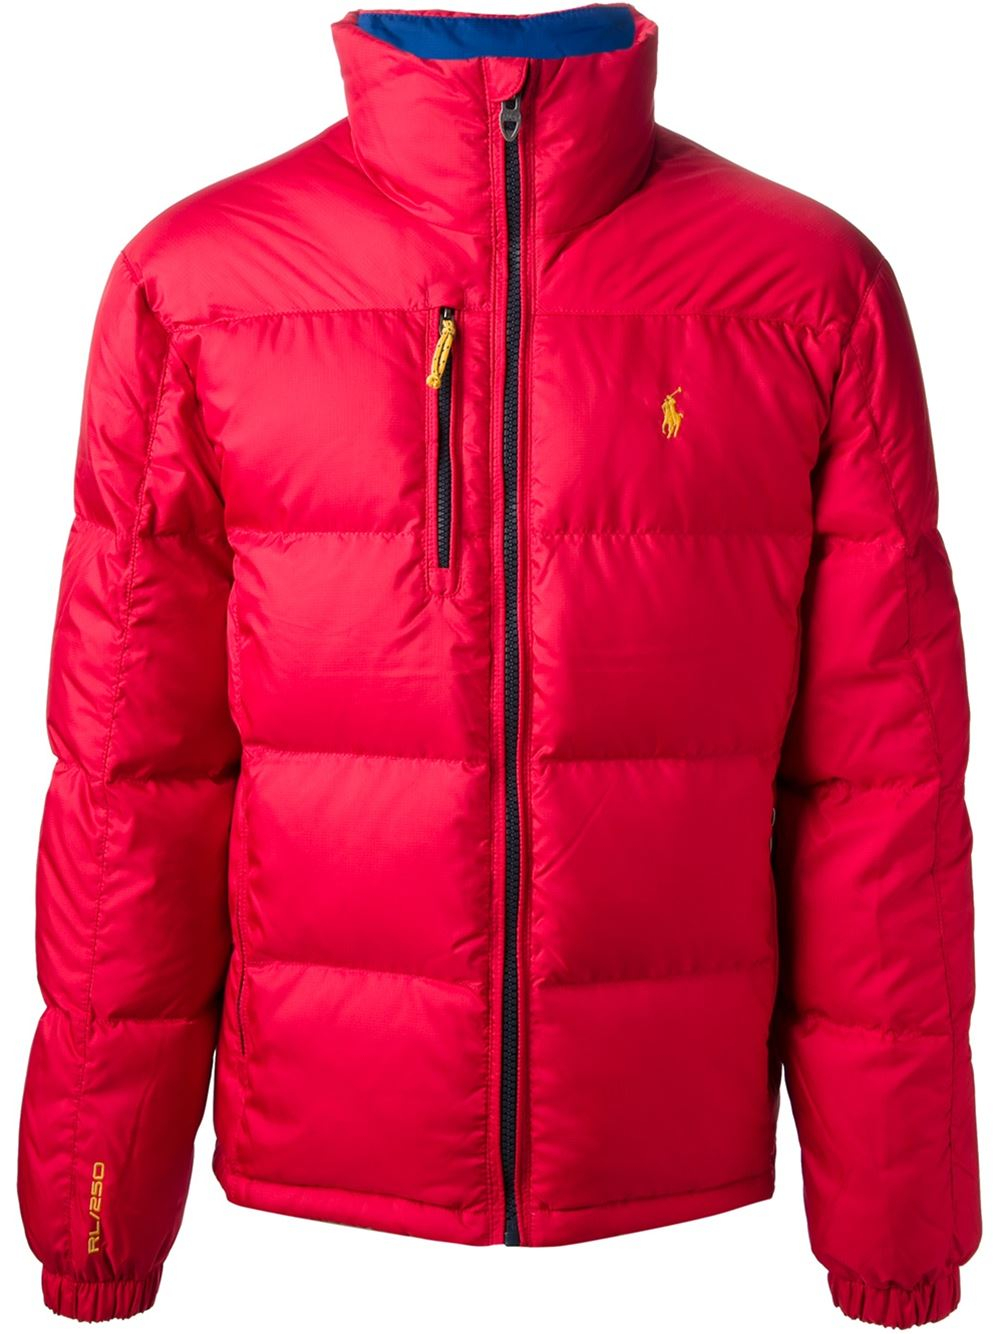 polo ralph lauren classic padded jacket in red for men lyst. Black Bedroom Furniture Sets. Home Design Ideas